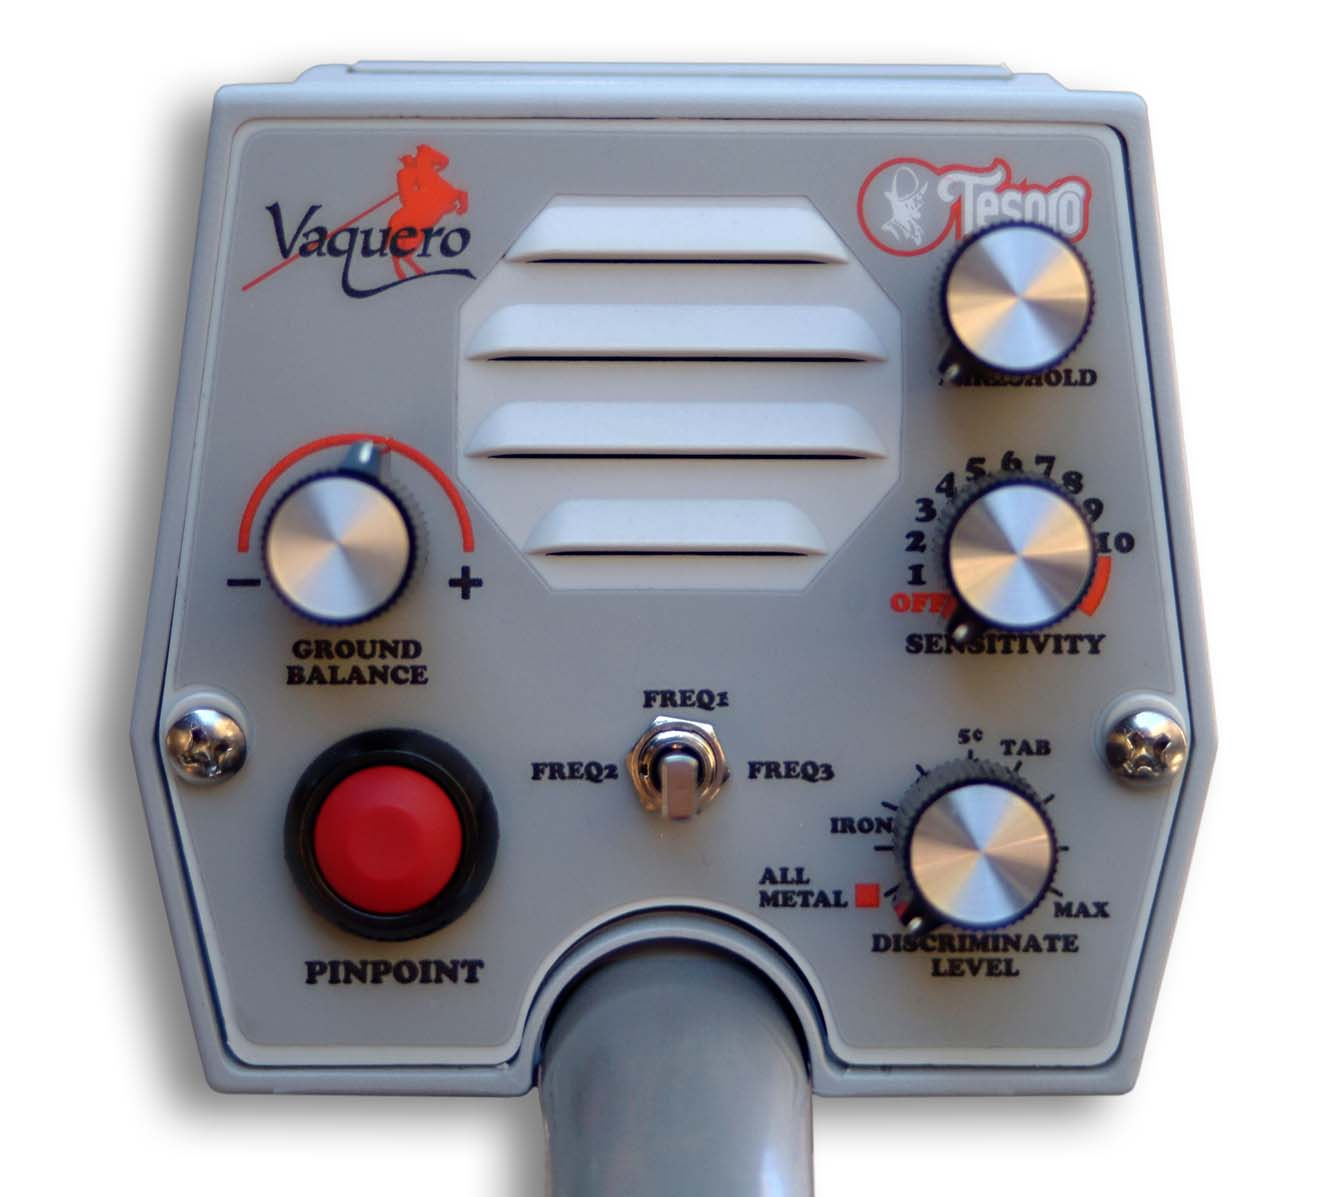 Tesoro Vaquero ground detector